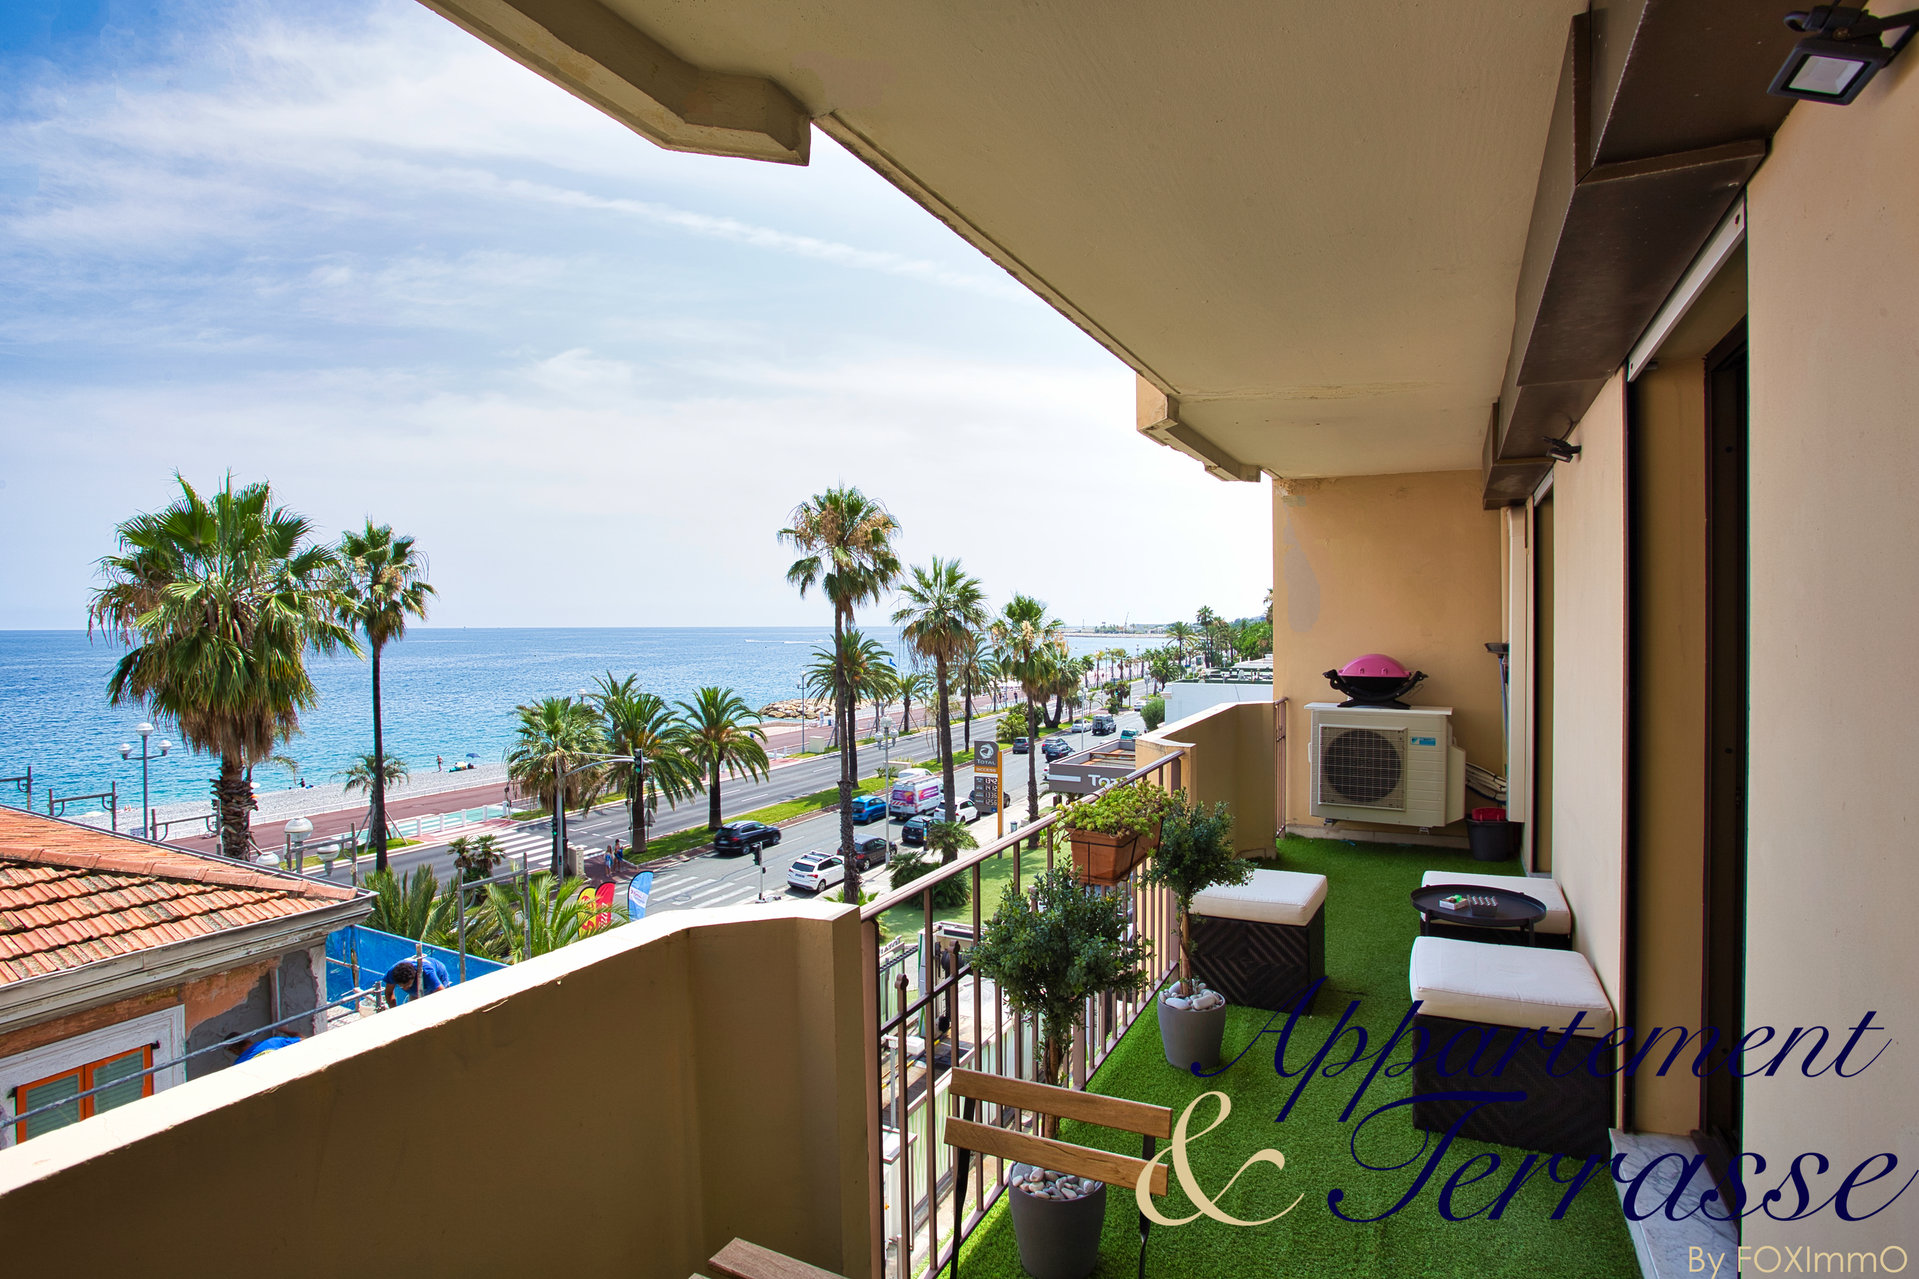 on the Promenade des Anglais, slightly offset to benefit from less nuisance, this magnificent 3 room apartment completely redone